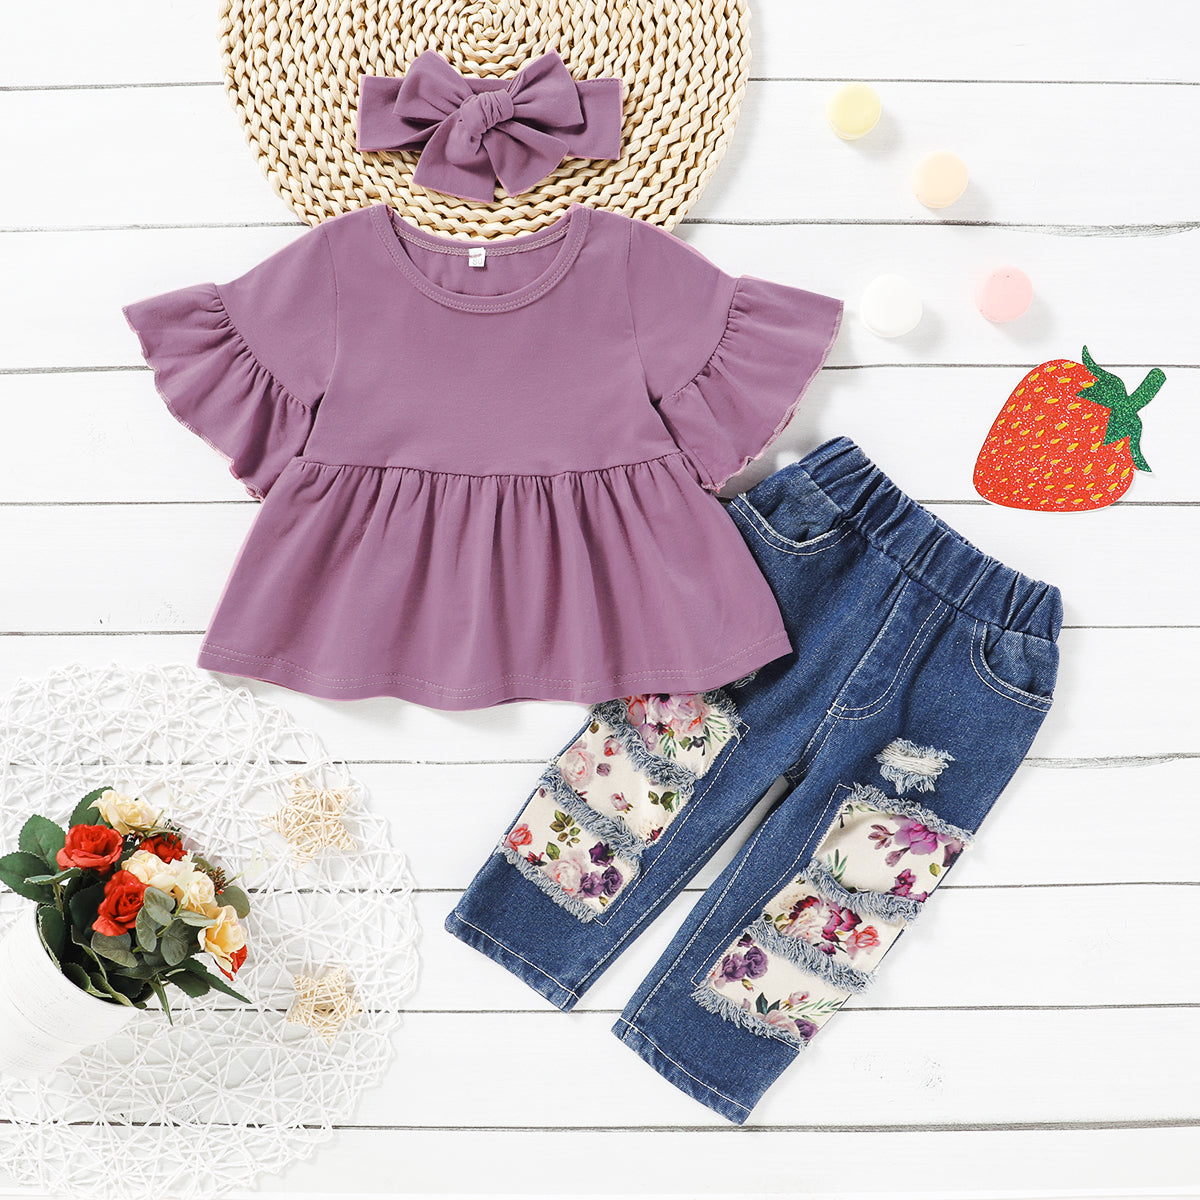 3-piece Baby / Toddler Girl Casual Solid Bell Sleeves Top and Floral Cropped Pants with Headband Set